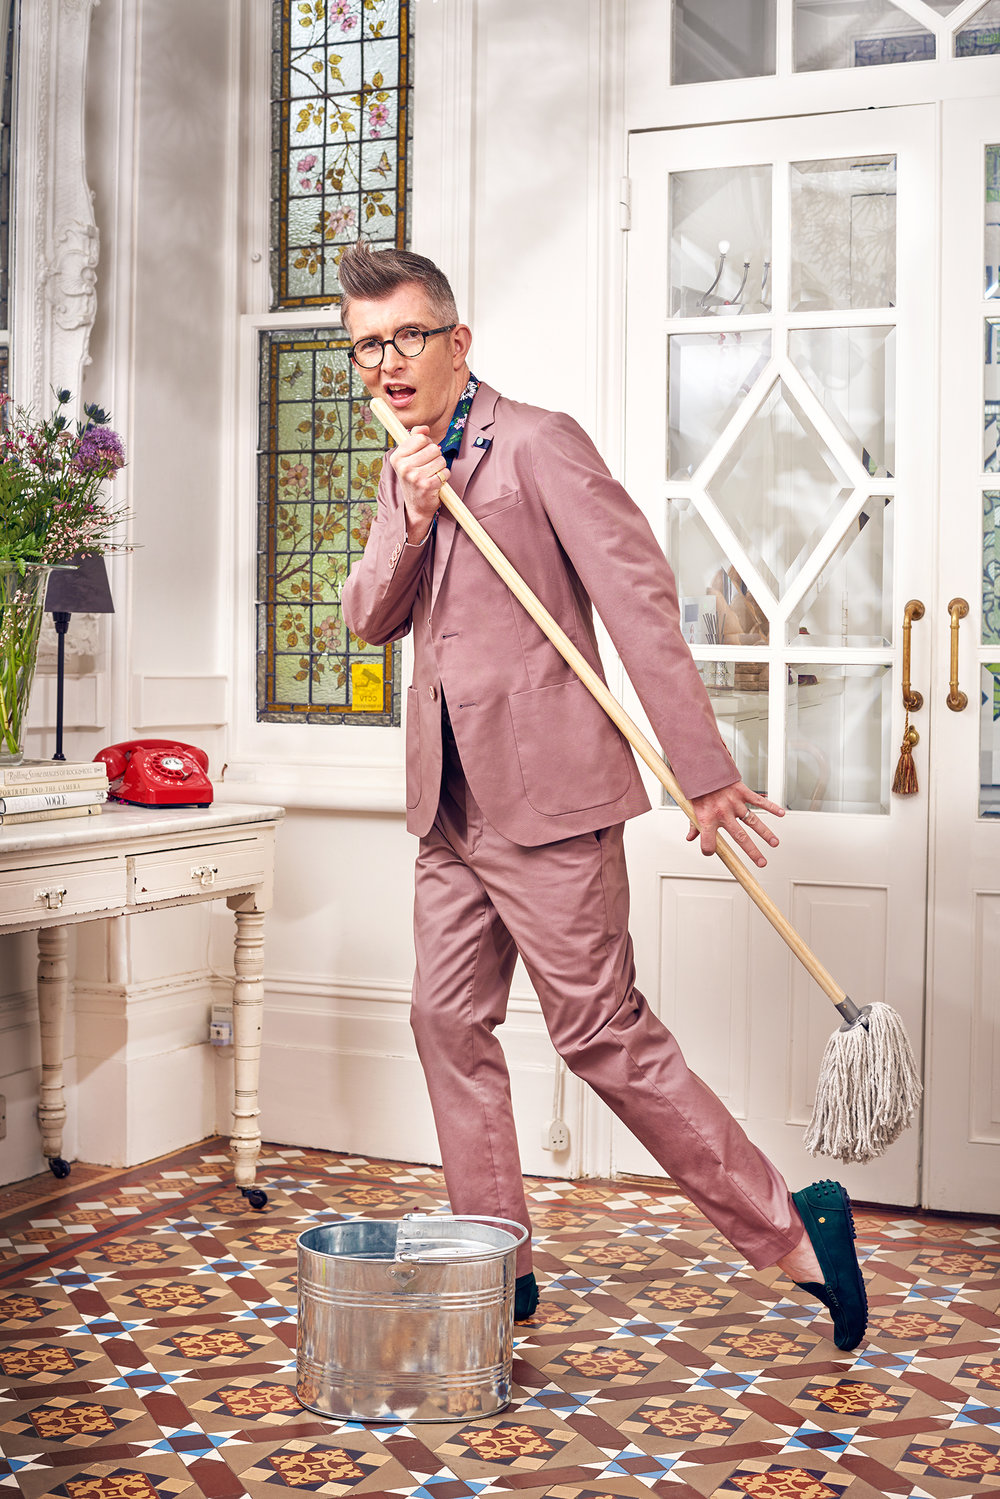 Gareth_malone_74931_low_res.jpg